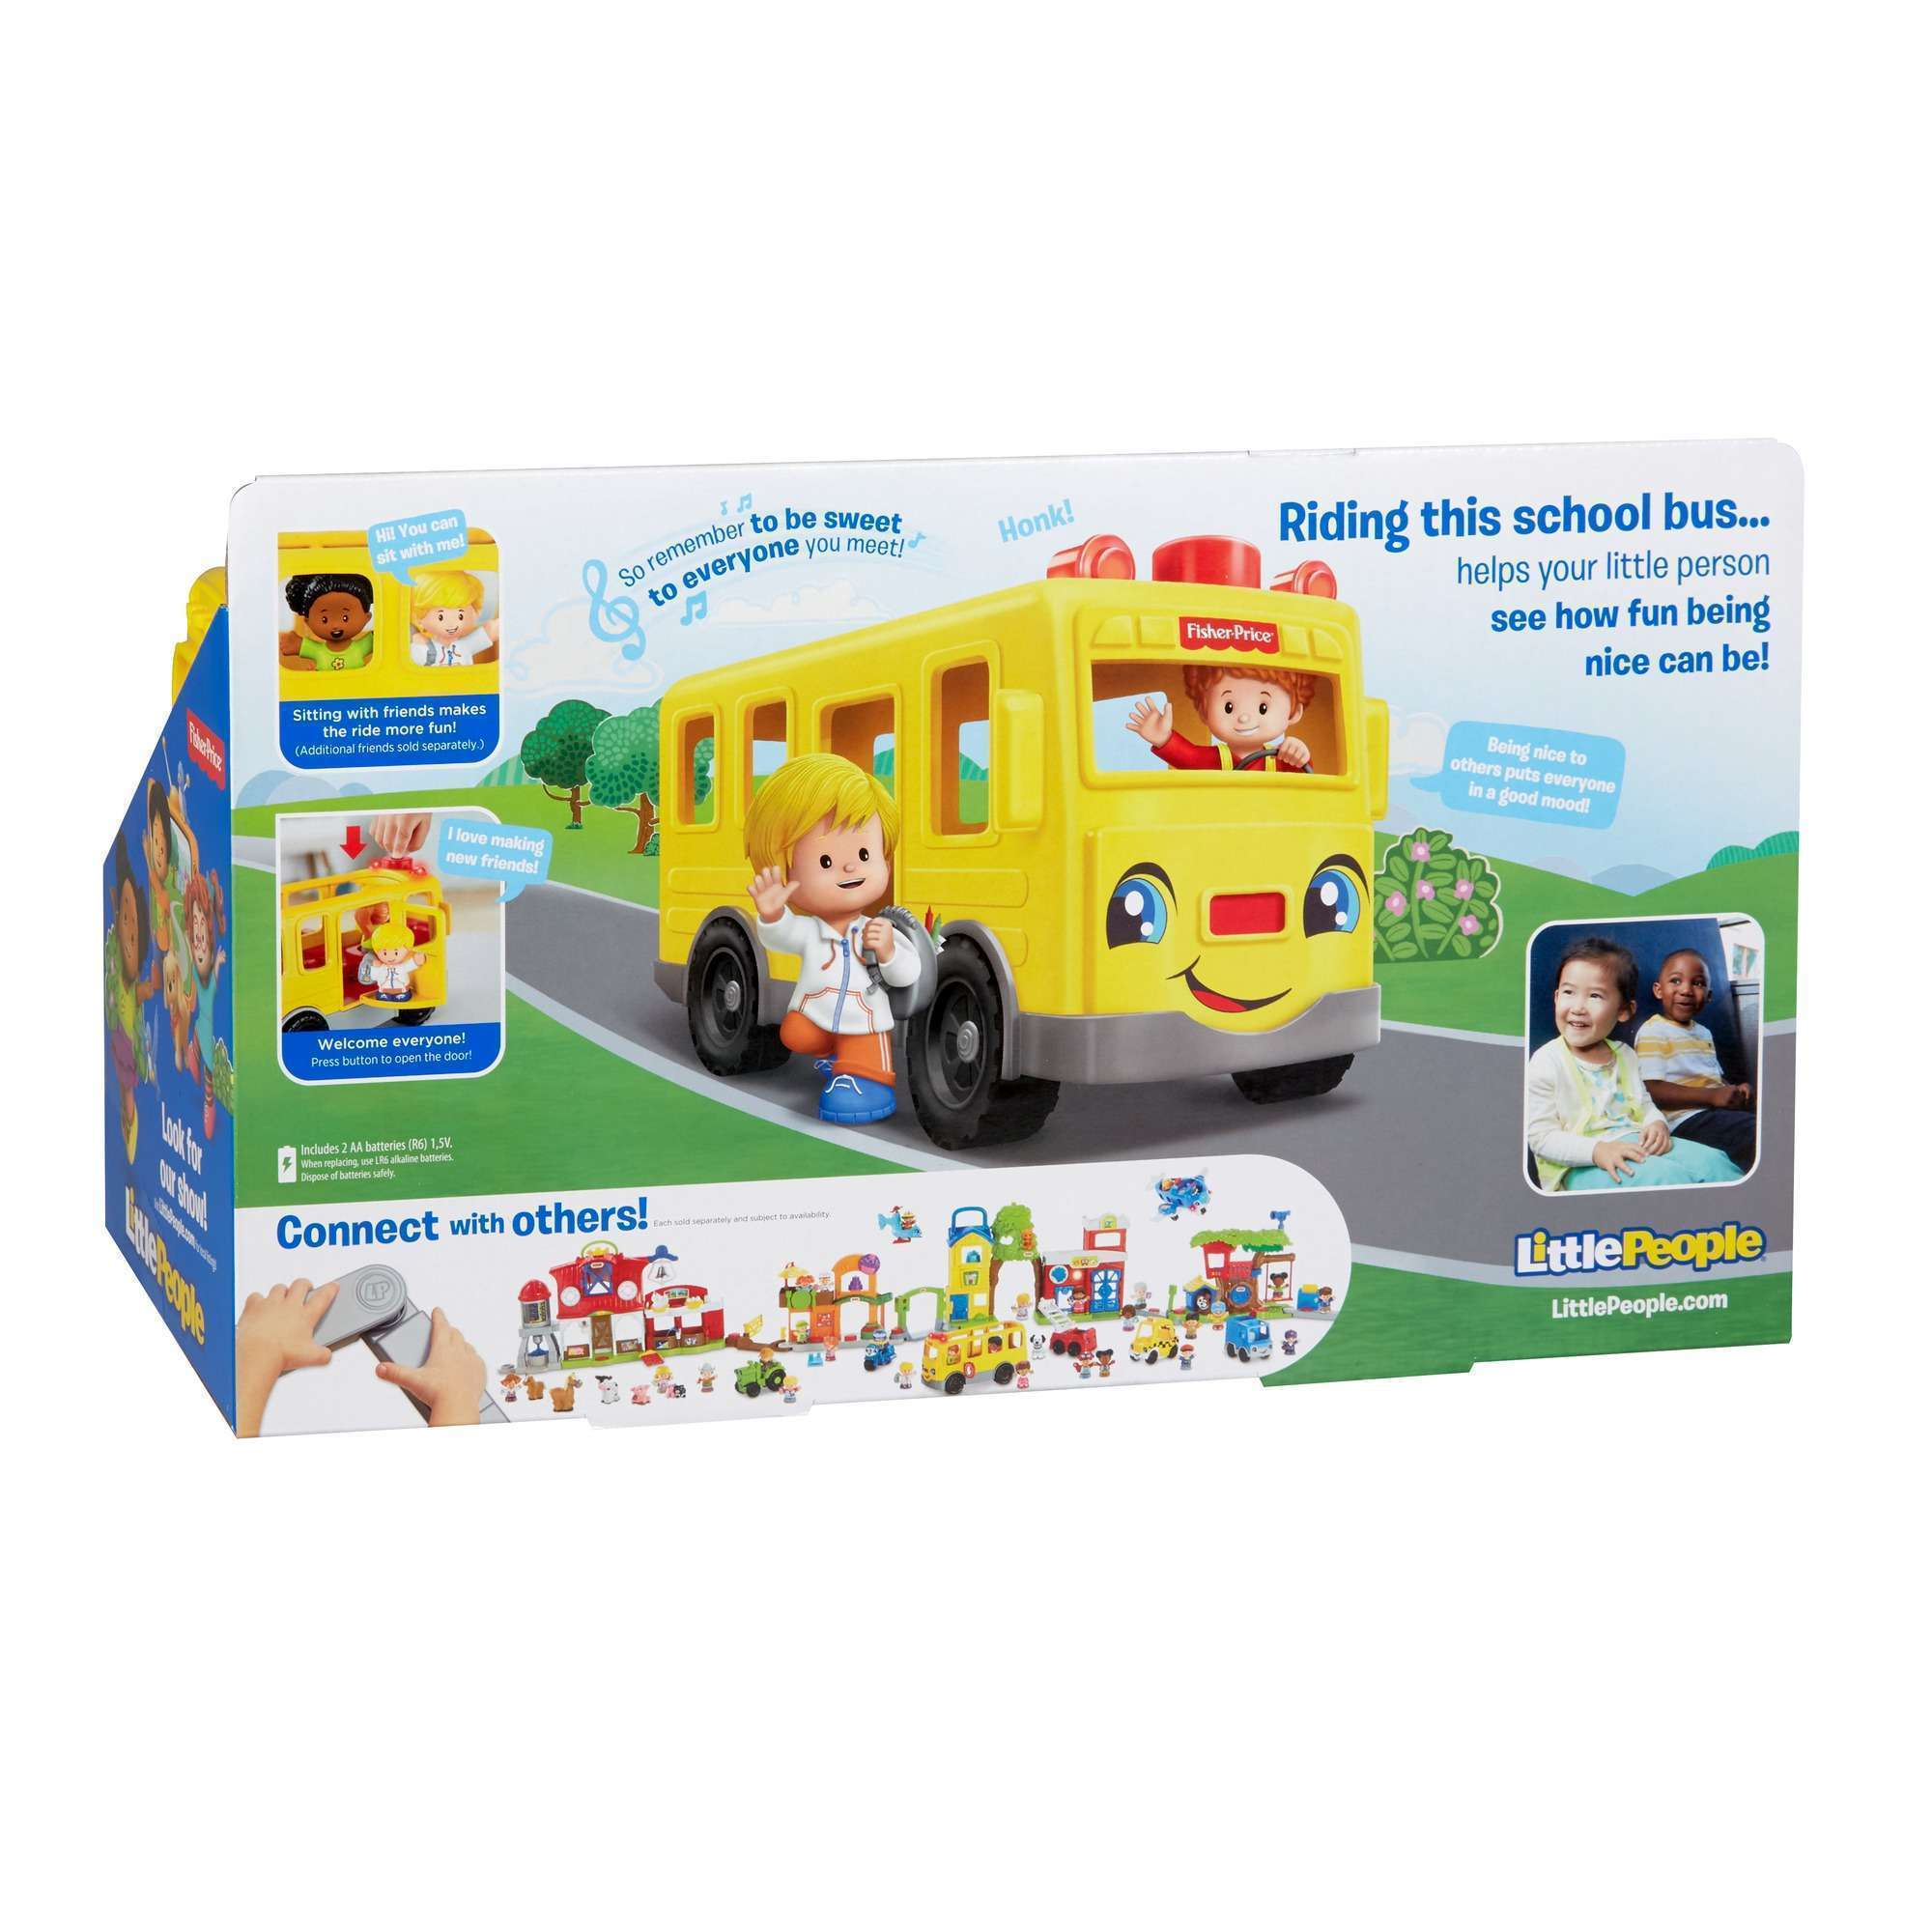 Ride on train toys 4246 can